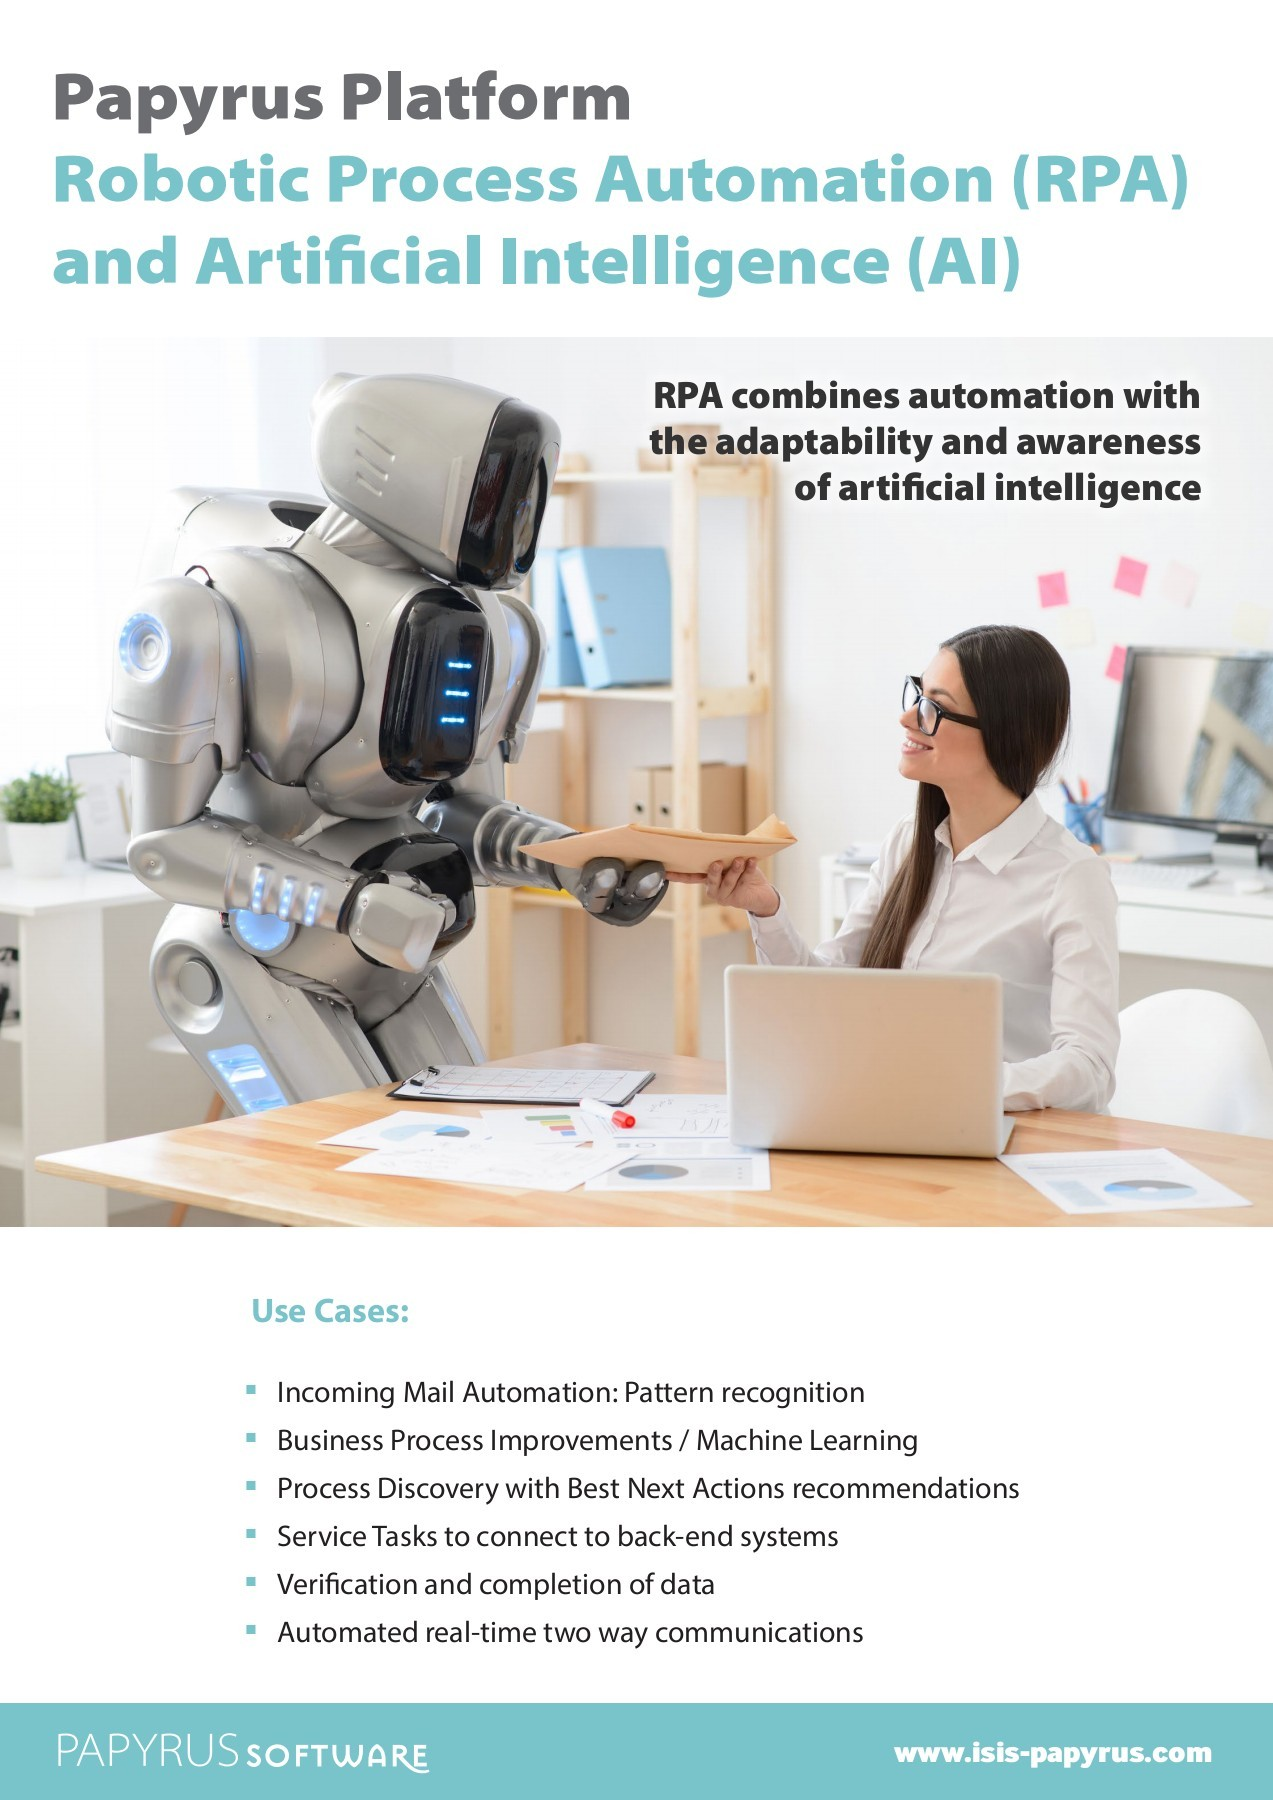 ISIS Papyrus - Robotic Process Automation (RPA) and Artificial